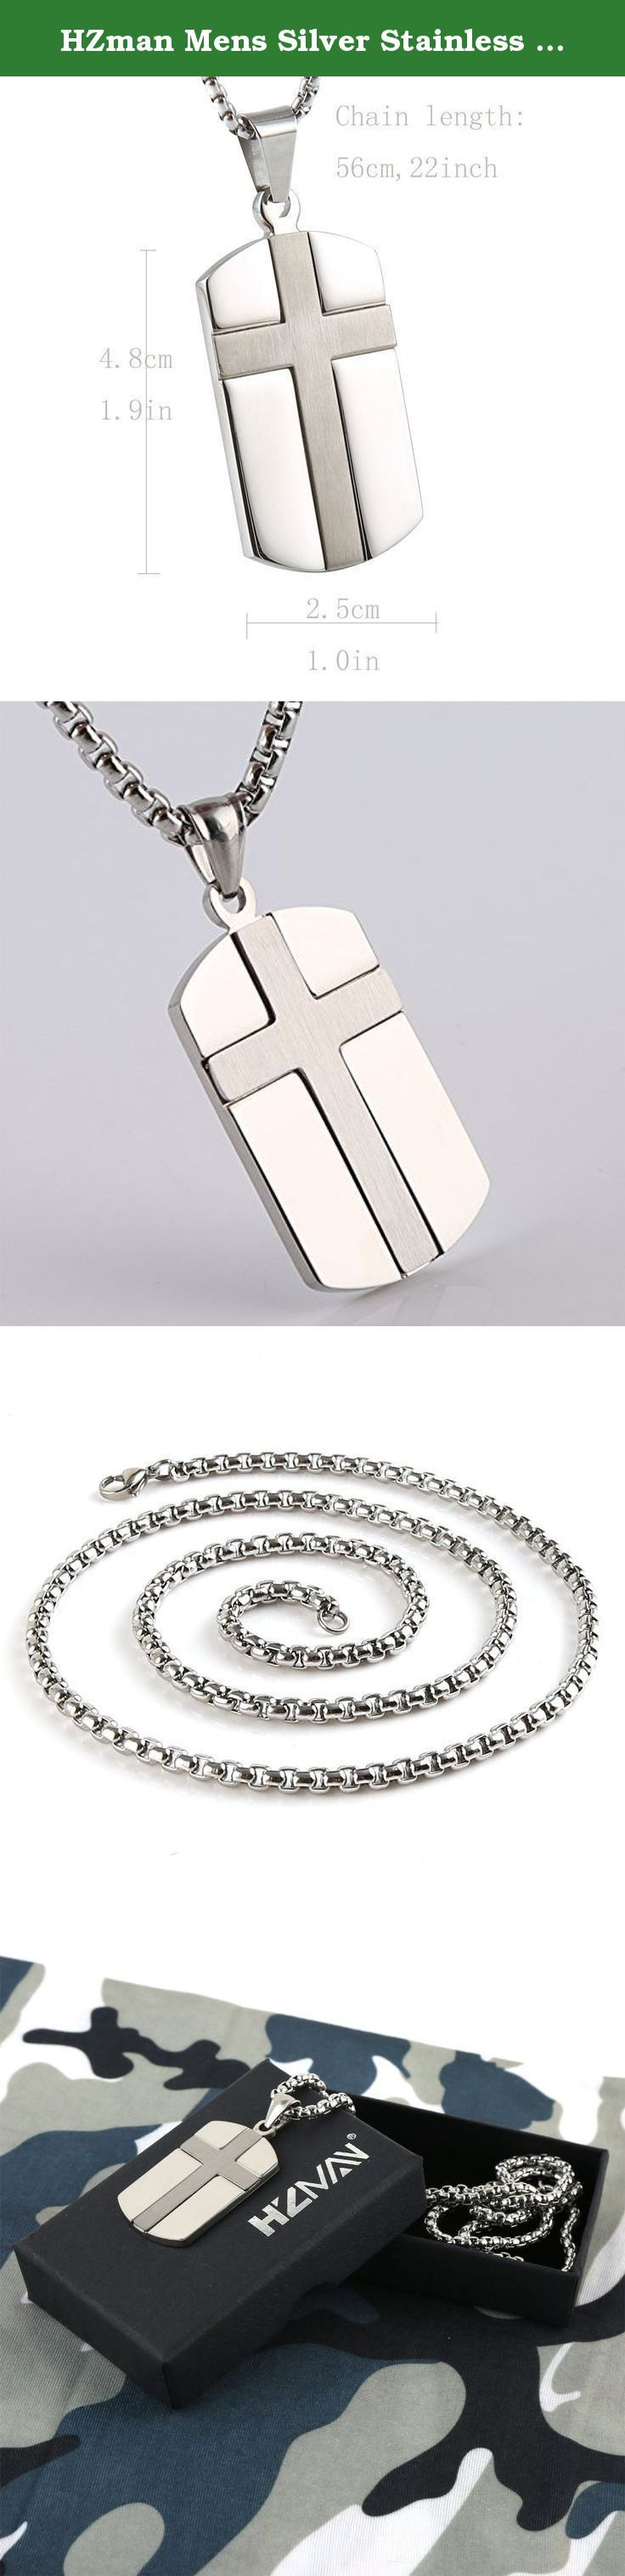 HZman Mens Silver Stainless Steel Cross Dog Tag Pendant Necklace Rolo Cable Wheat Chain. 90 DAY MONEY BACK GUARANTEE-100% satisfaction guaranteed. That is our promise. So, if you're not completely happy with your purchase within the first 90 days, just let us know. We will do whatever it takes to make it right Provide The Best Quality jewelry and Customer Service on Amazon. Why choose Stainless Steel Jewelry? Stainless Steel jewelry does not tarnish and oxidize, which can last longer than...